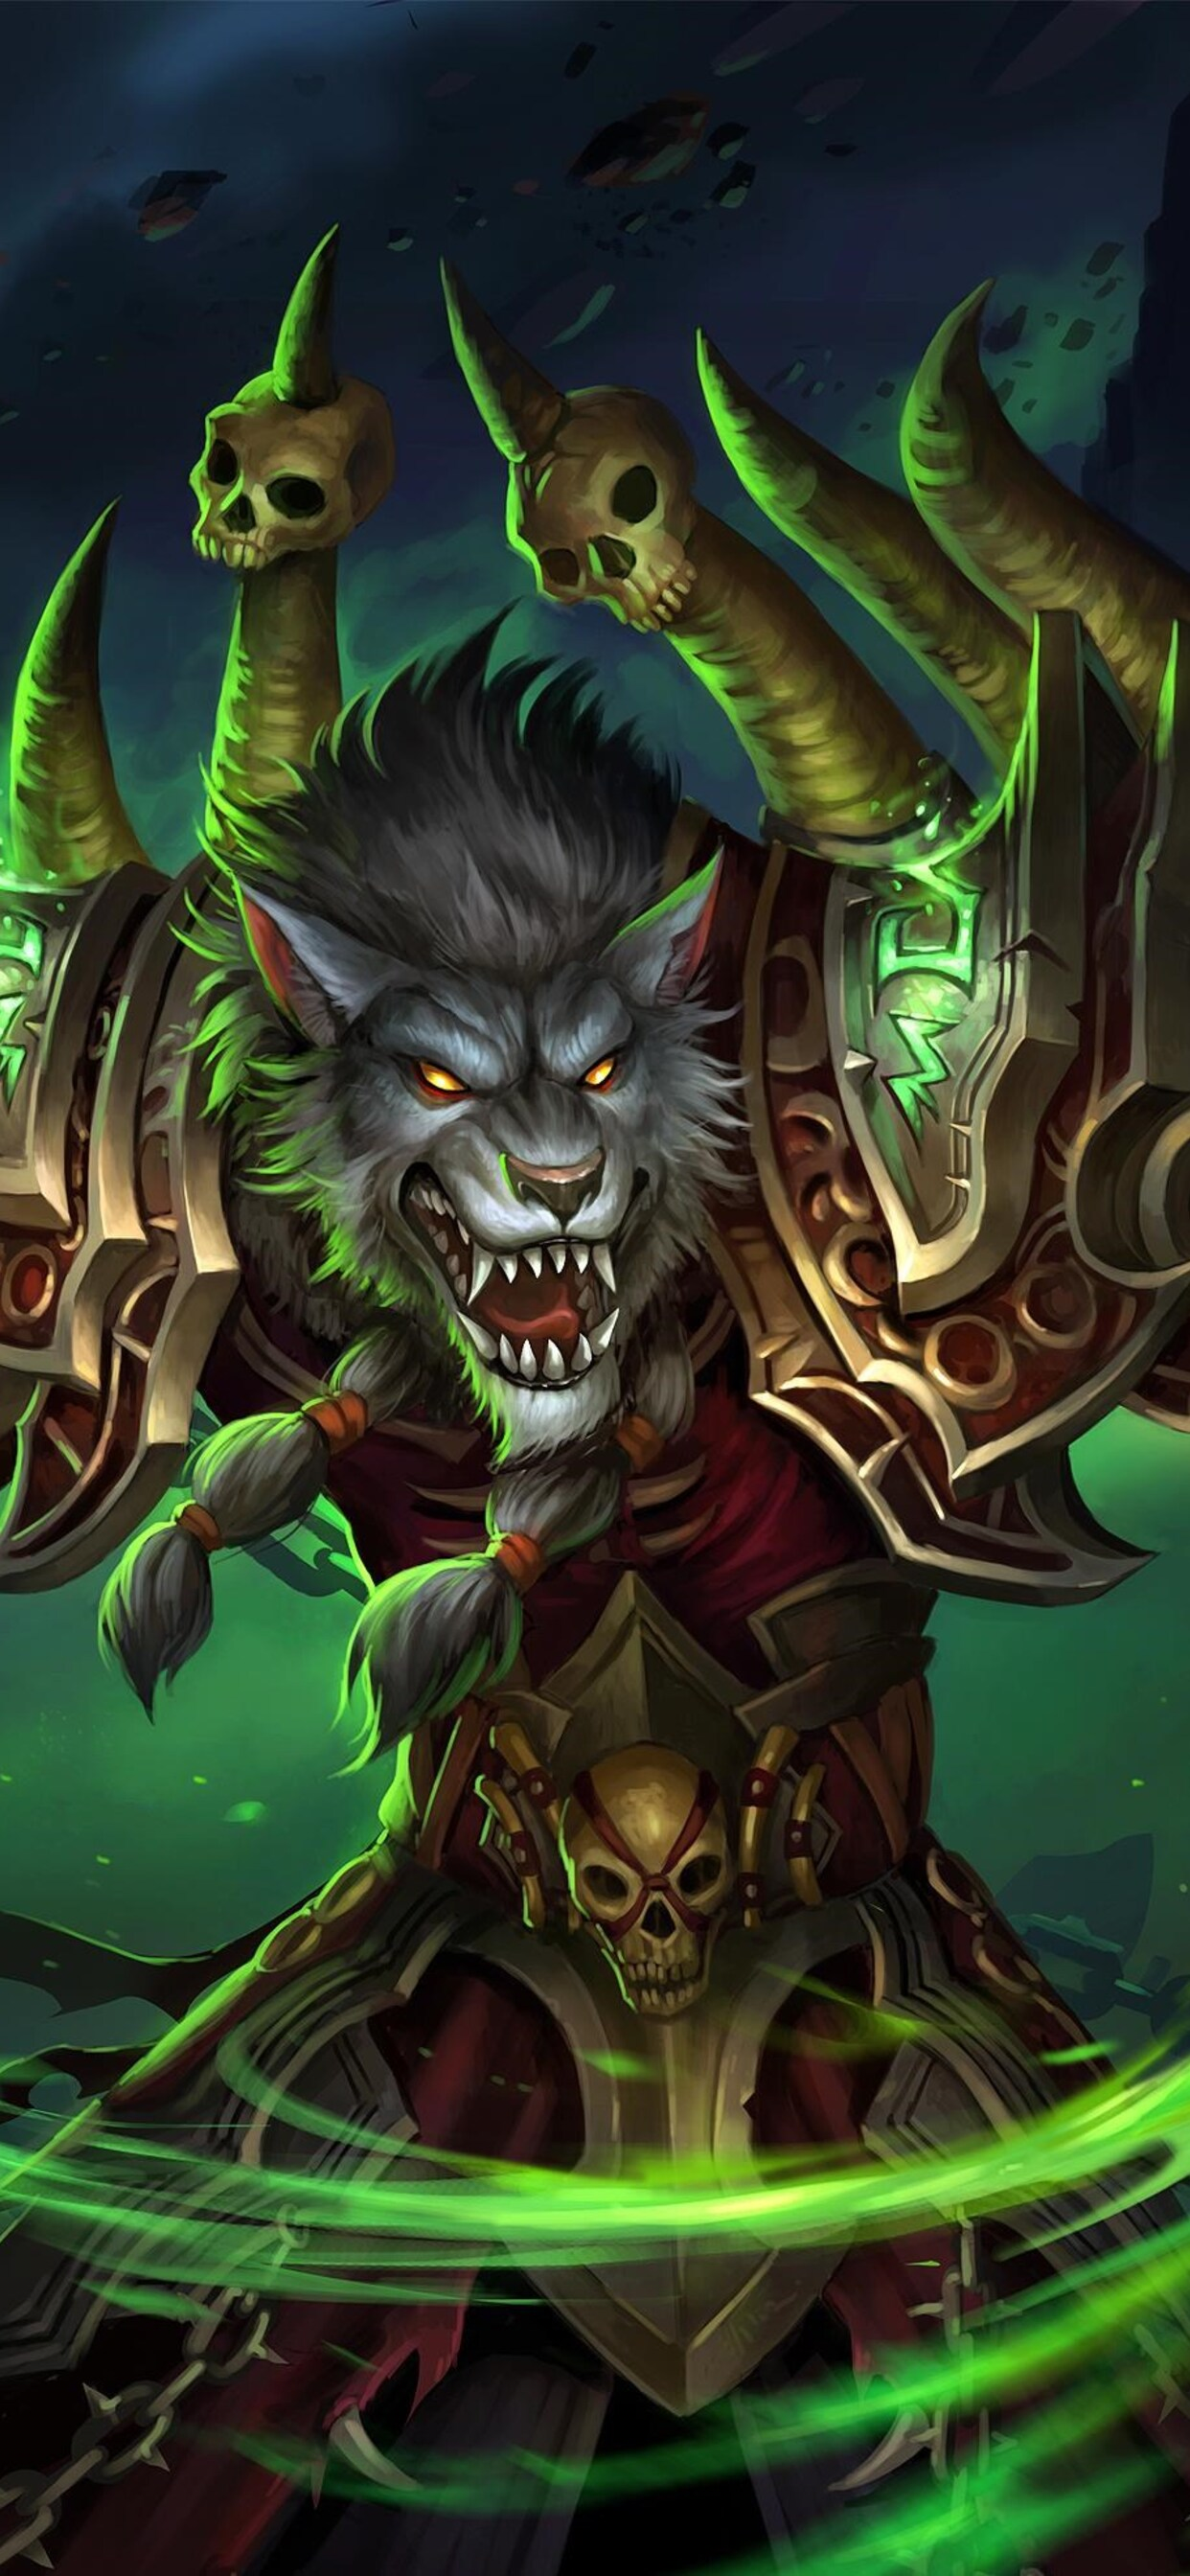 1242x2688 World Of Warcraft Worgen Warlock Iphone Xs Max Hd